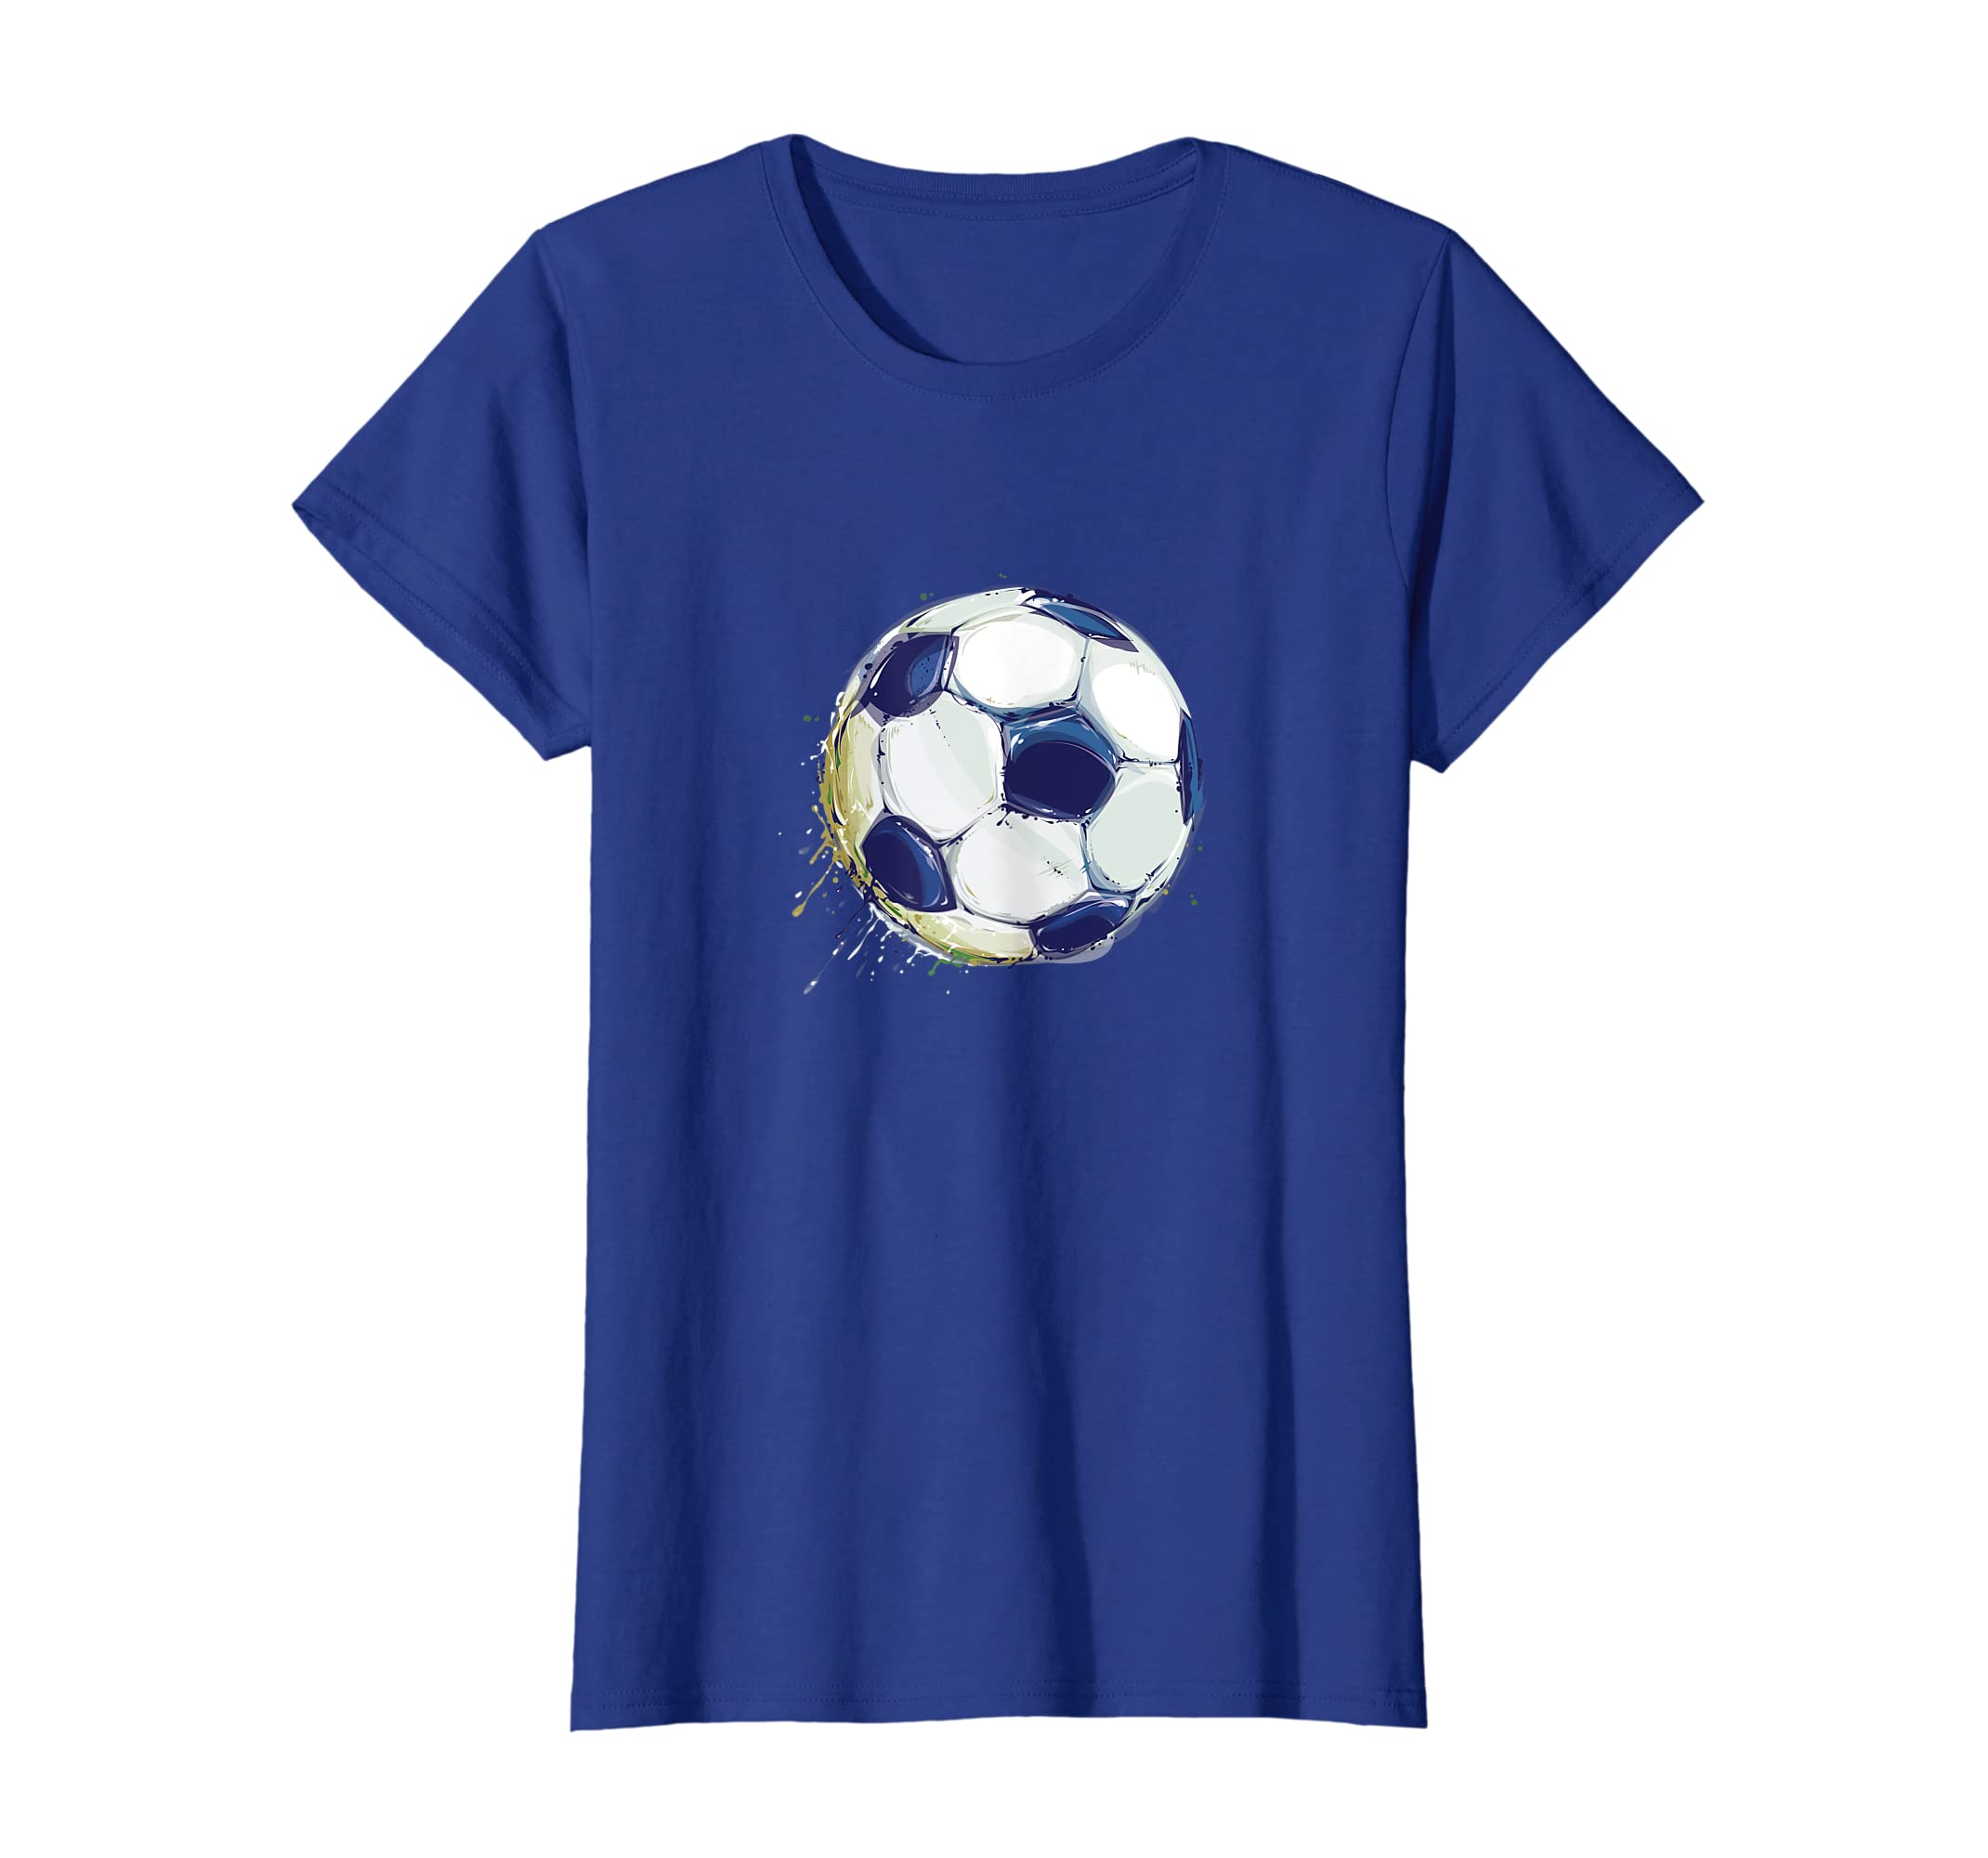 a4b87afe3 Amazon.com: Athletic Soccer Football Ball Sports Player T-Shirt: Clothing